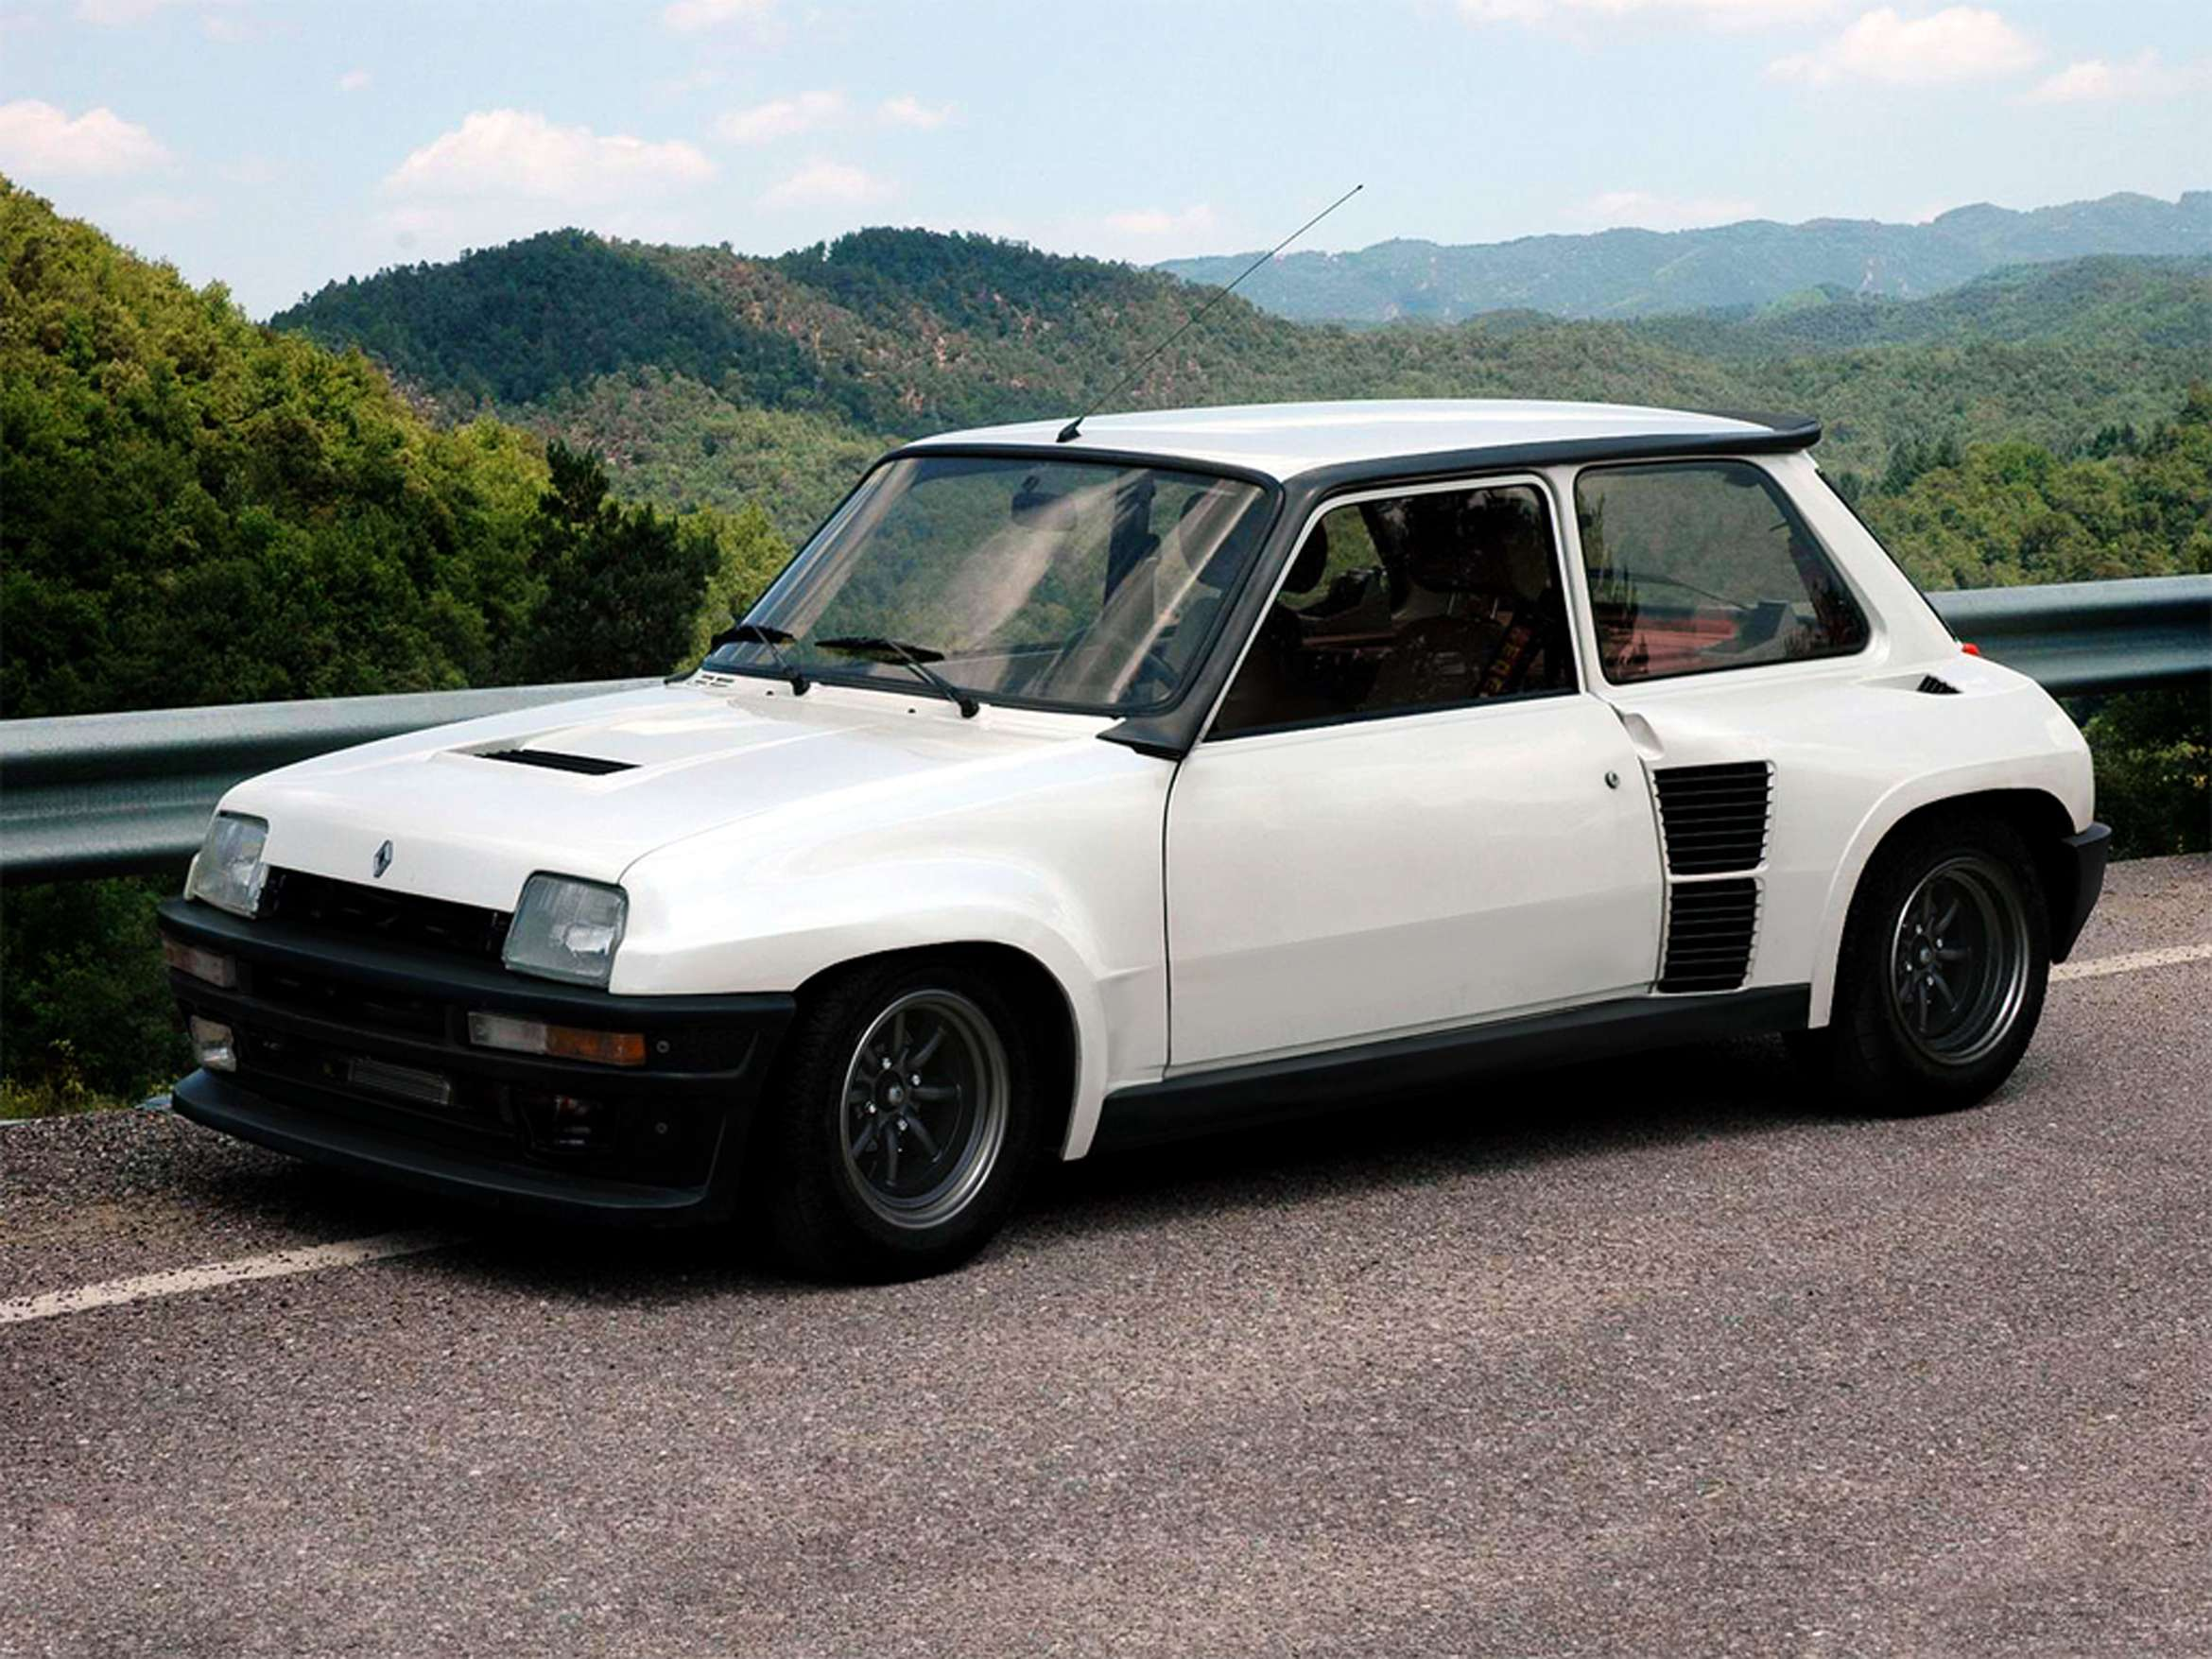 Renault 5 Turbo #8119657